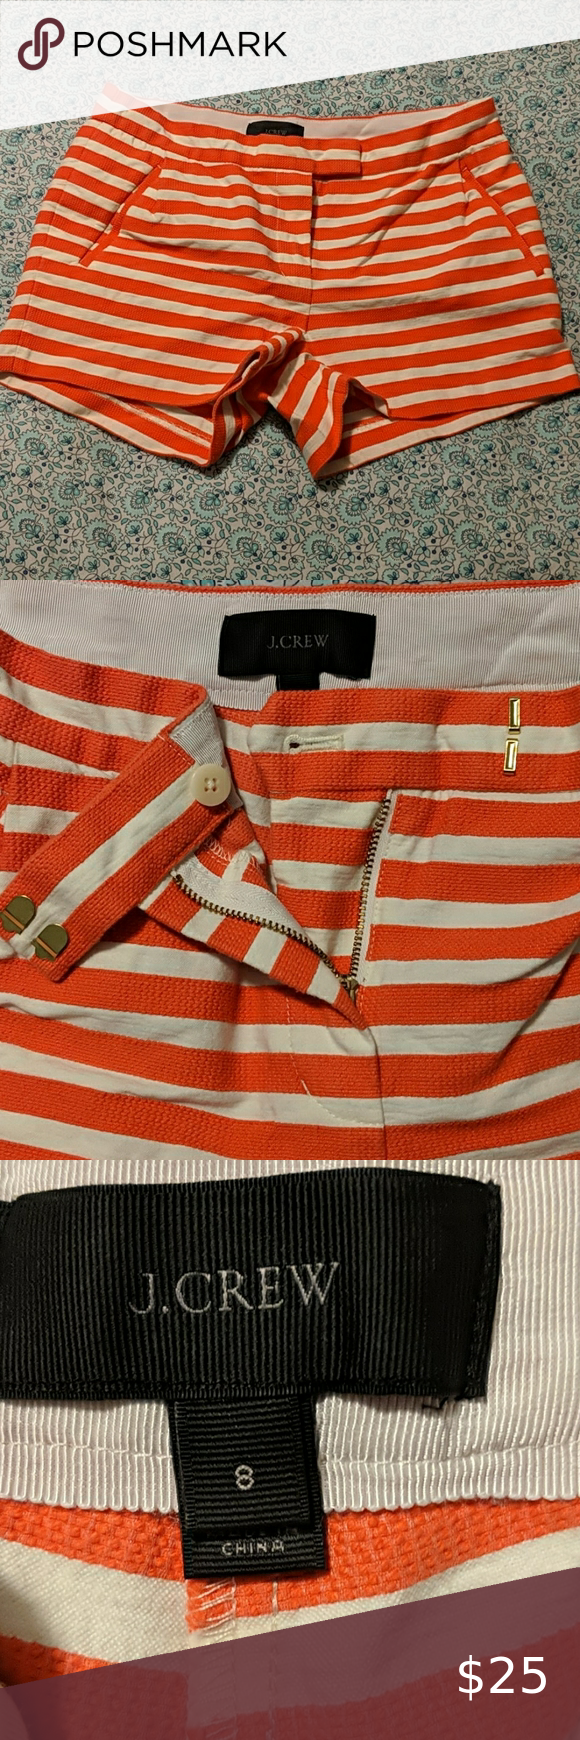 ????J. Crew boating shorts! Worn once, like brand new! J. Crew Shorts Jean Shorts #myposhpicks